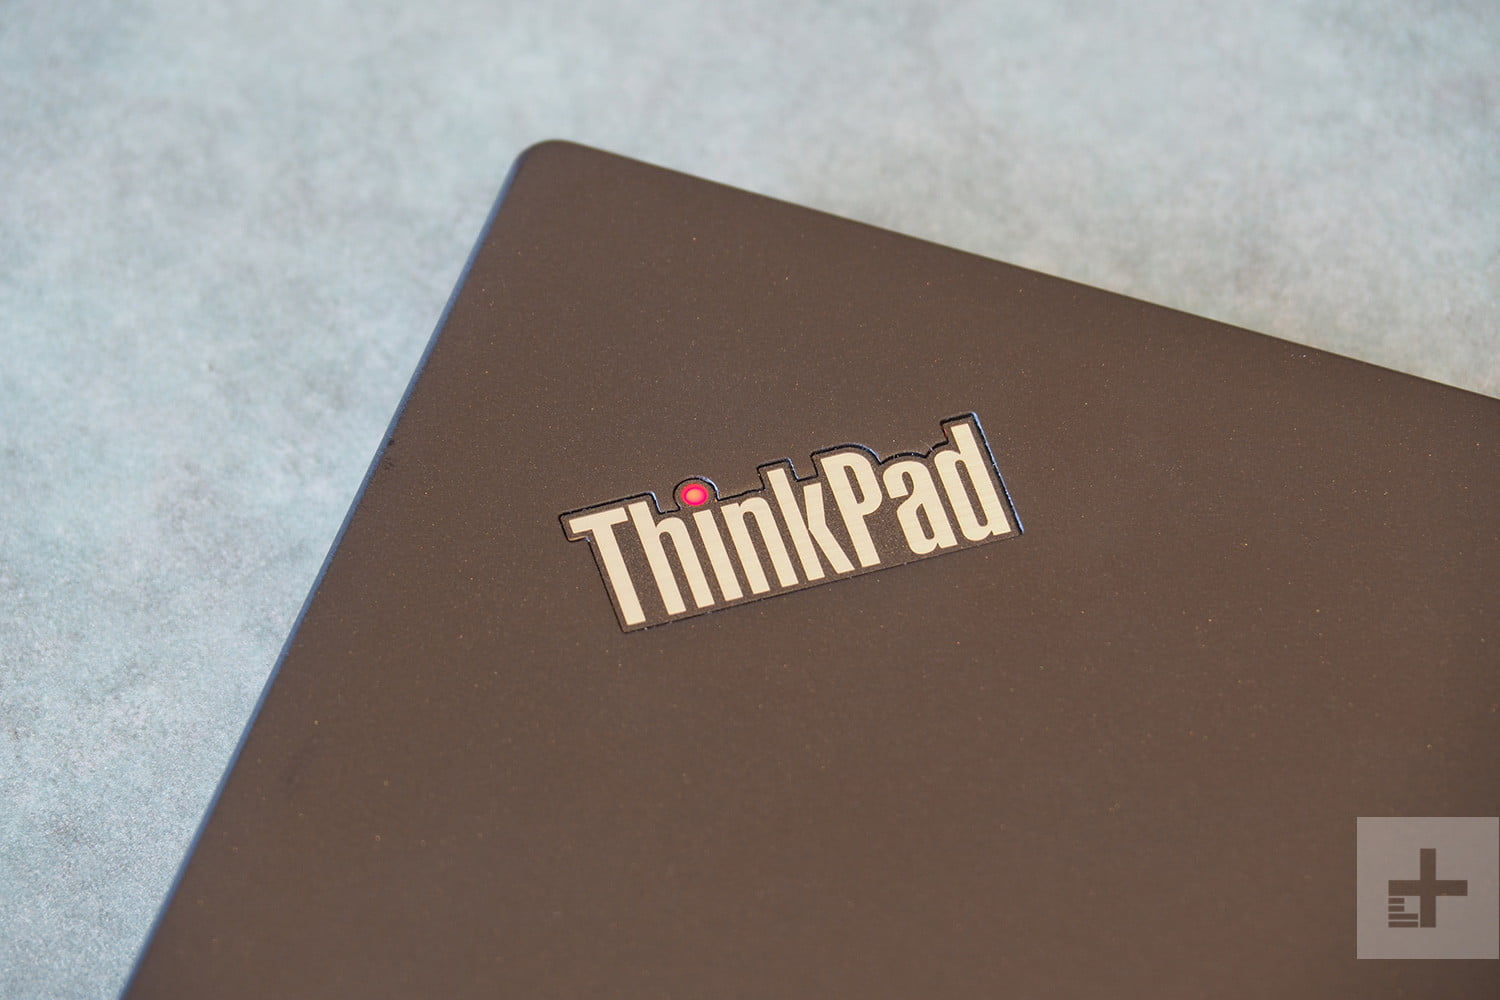 thinkpad buying guide how to choose your next business laptop digital trends thinkpad buying guide how to choose